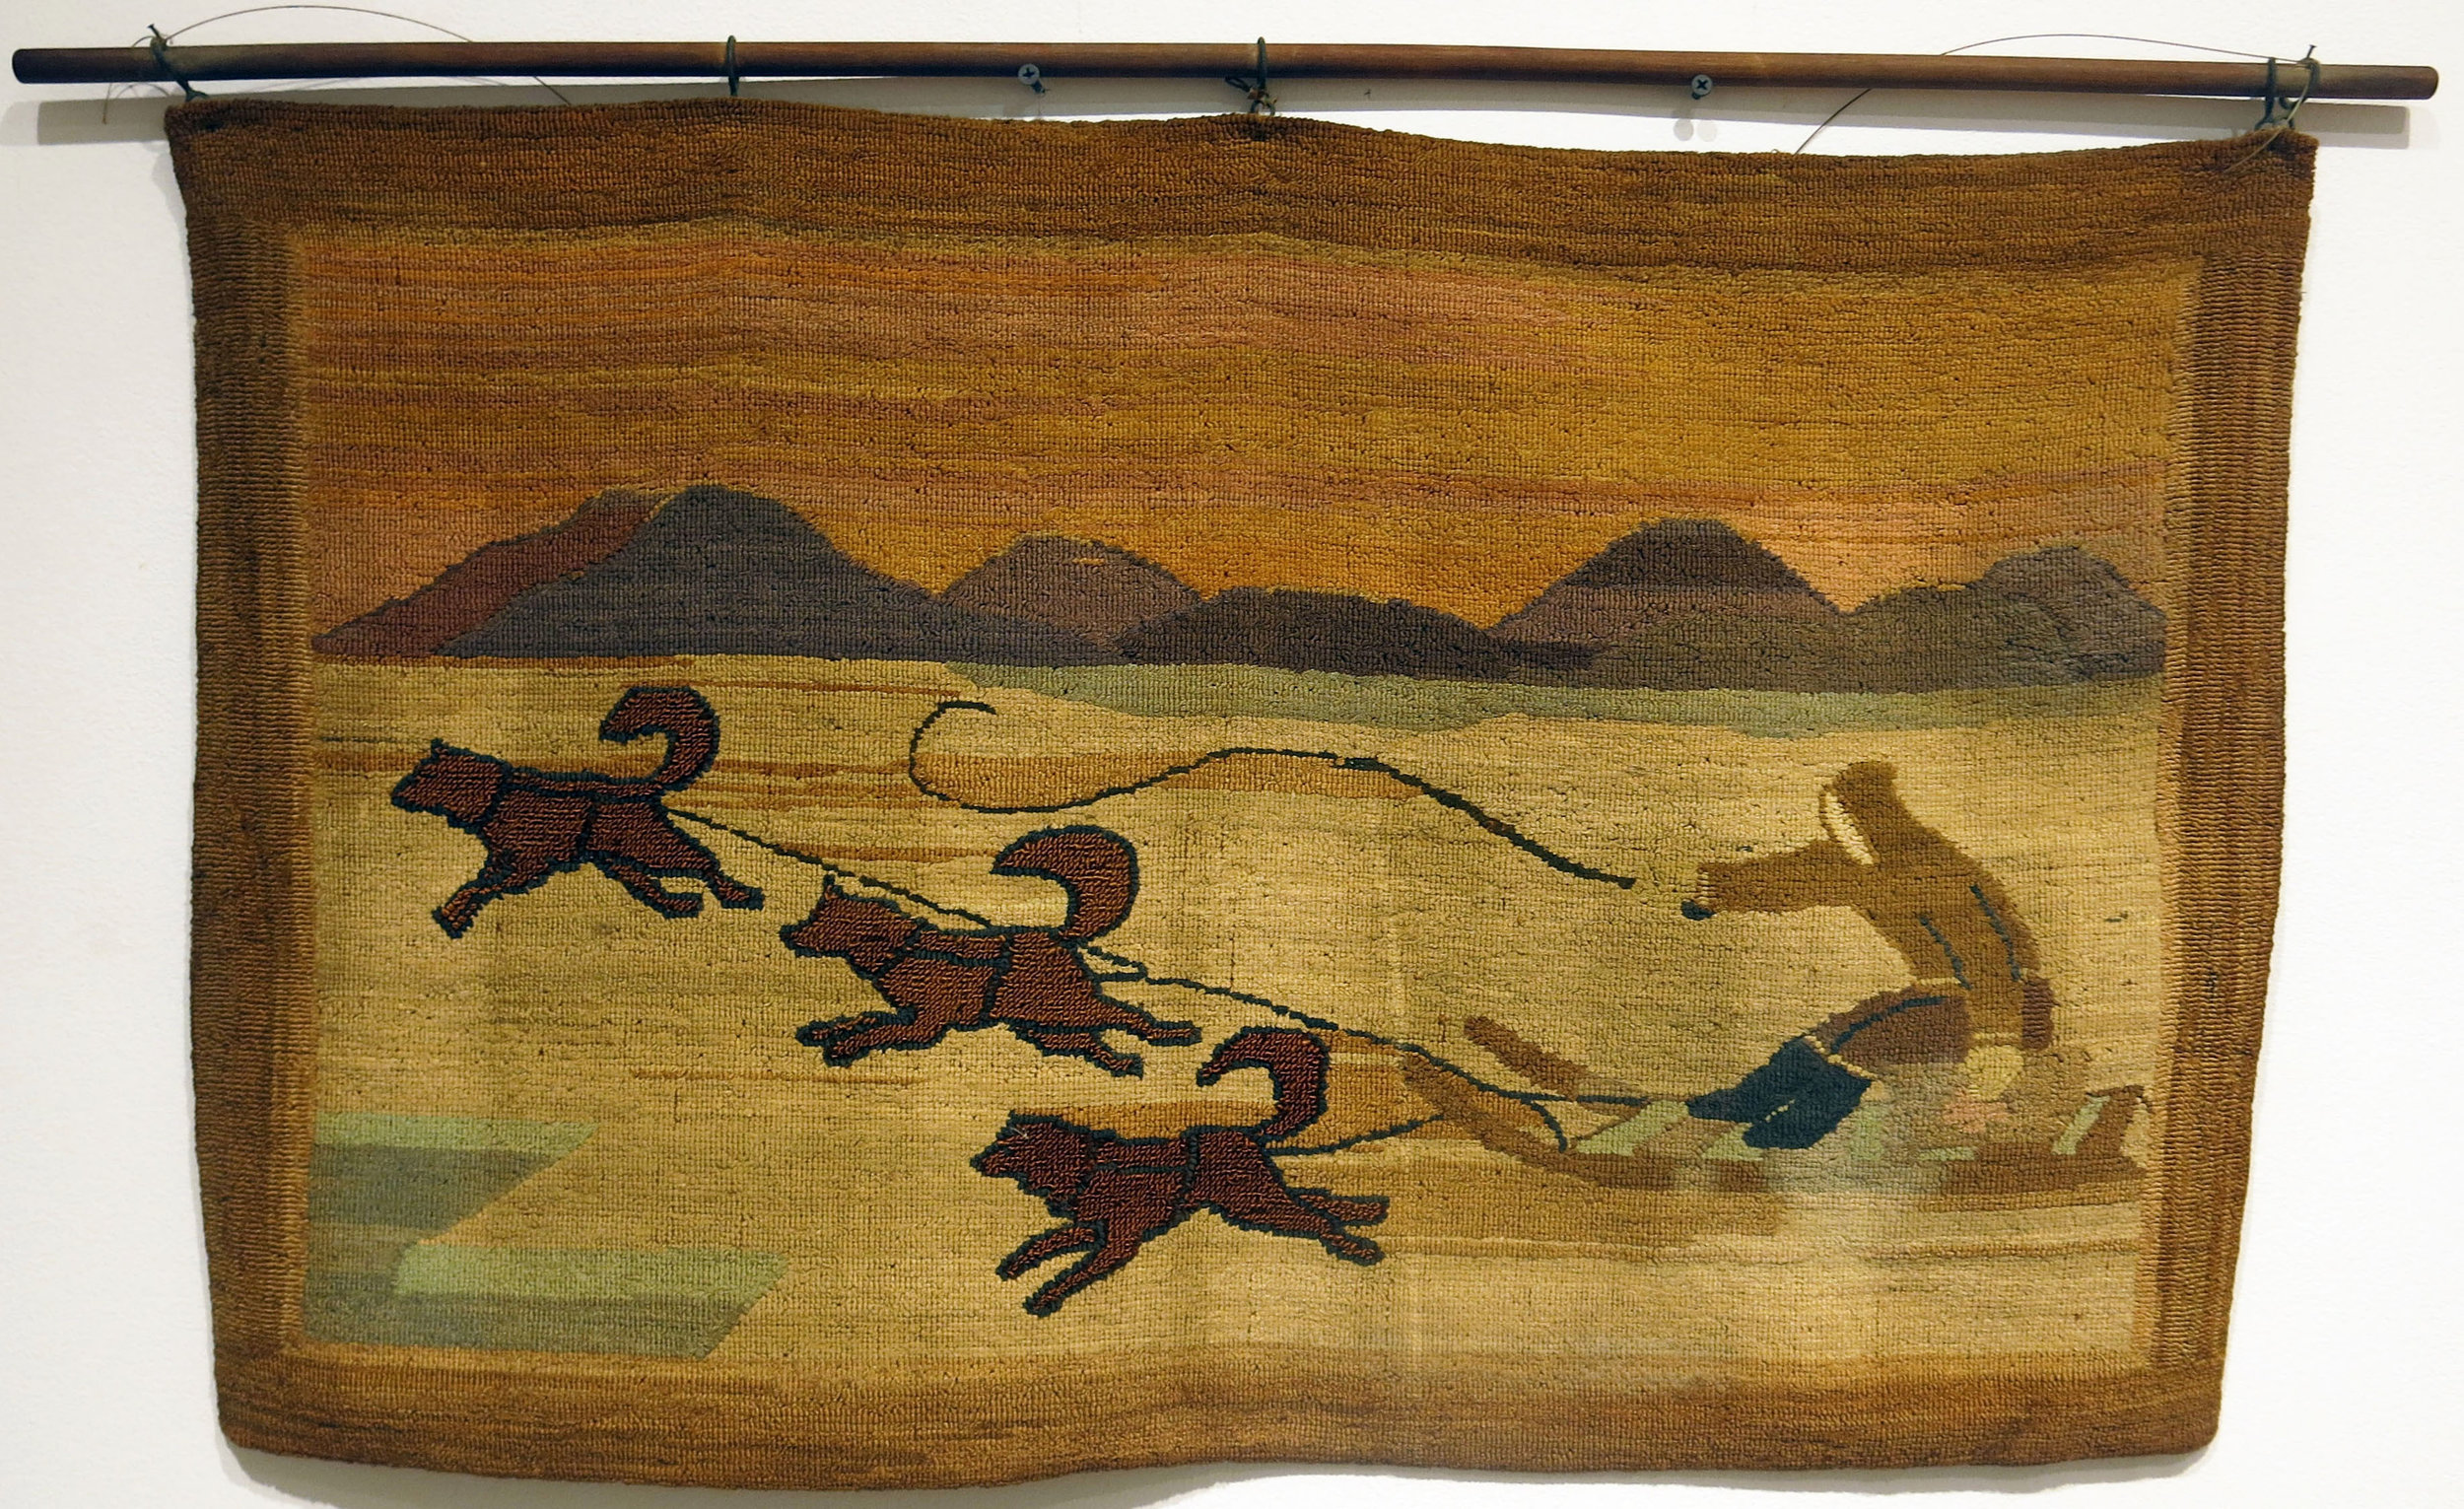 Anonymous, The Grenfell Mission, 3 Dog Sled, c. 1925, silk, rayon, burlap; dyed, 20 1/2h x 32w in.